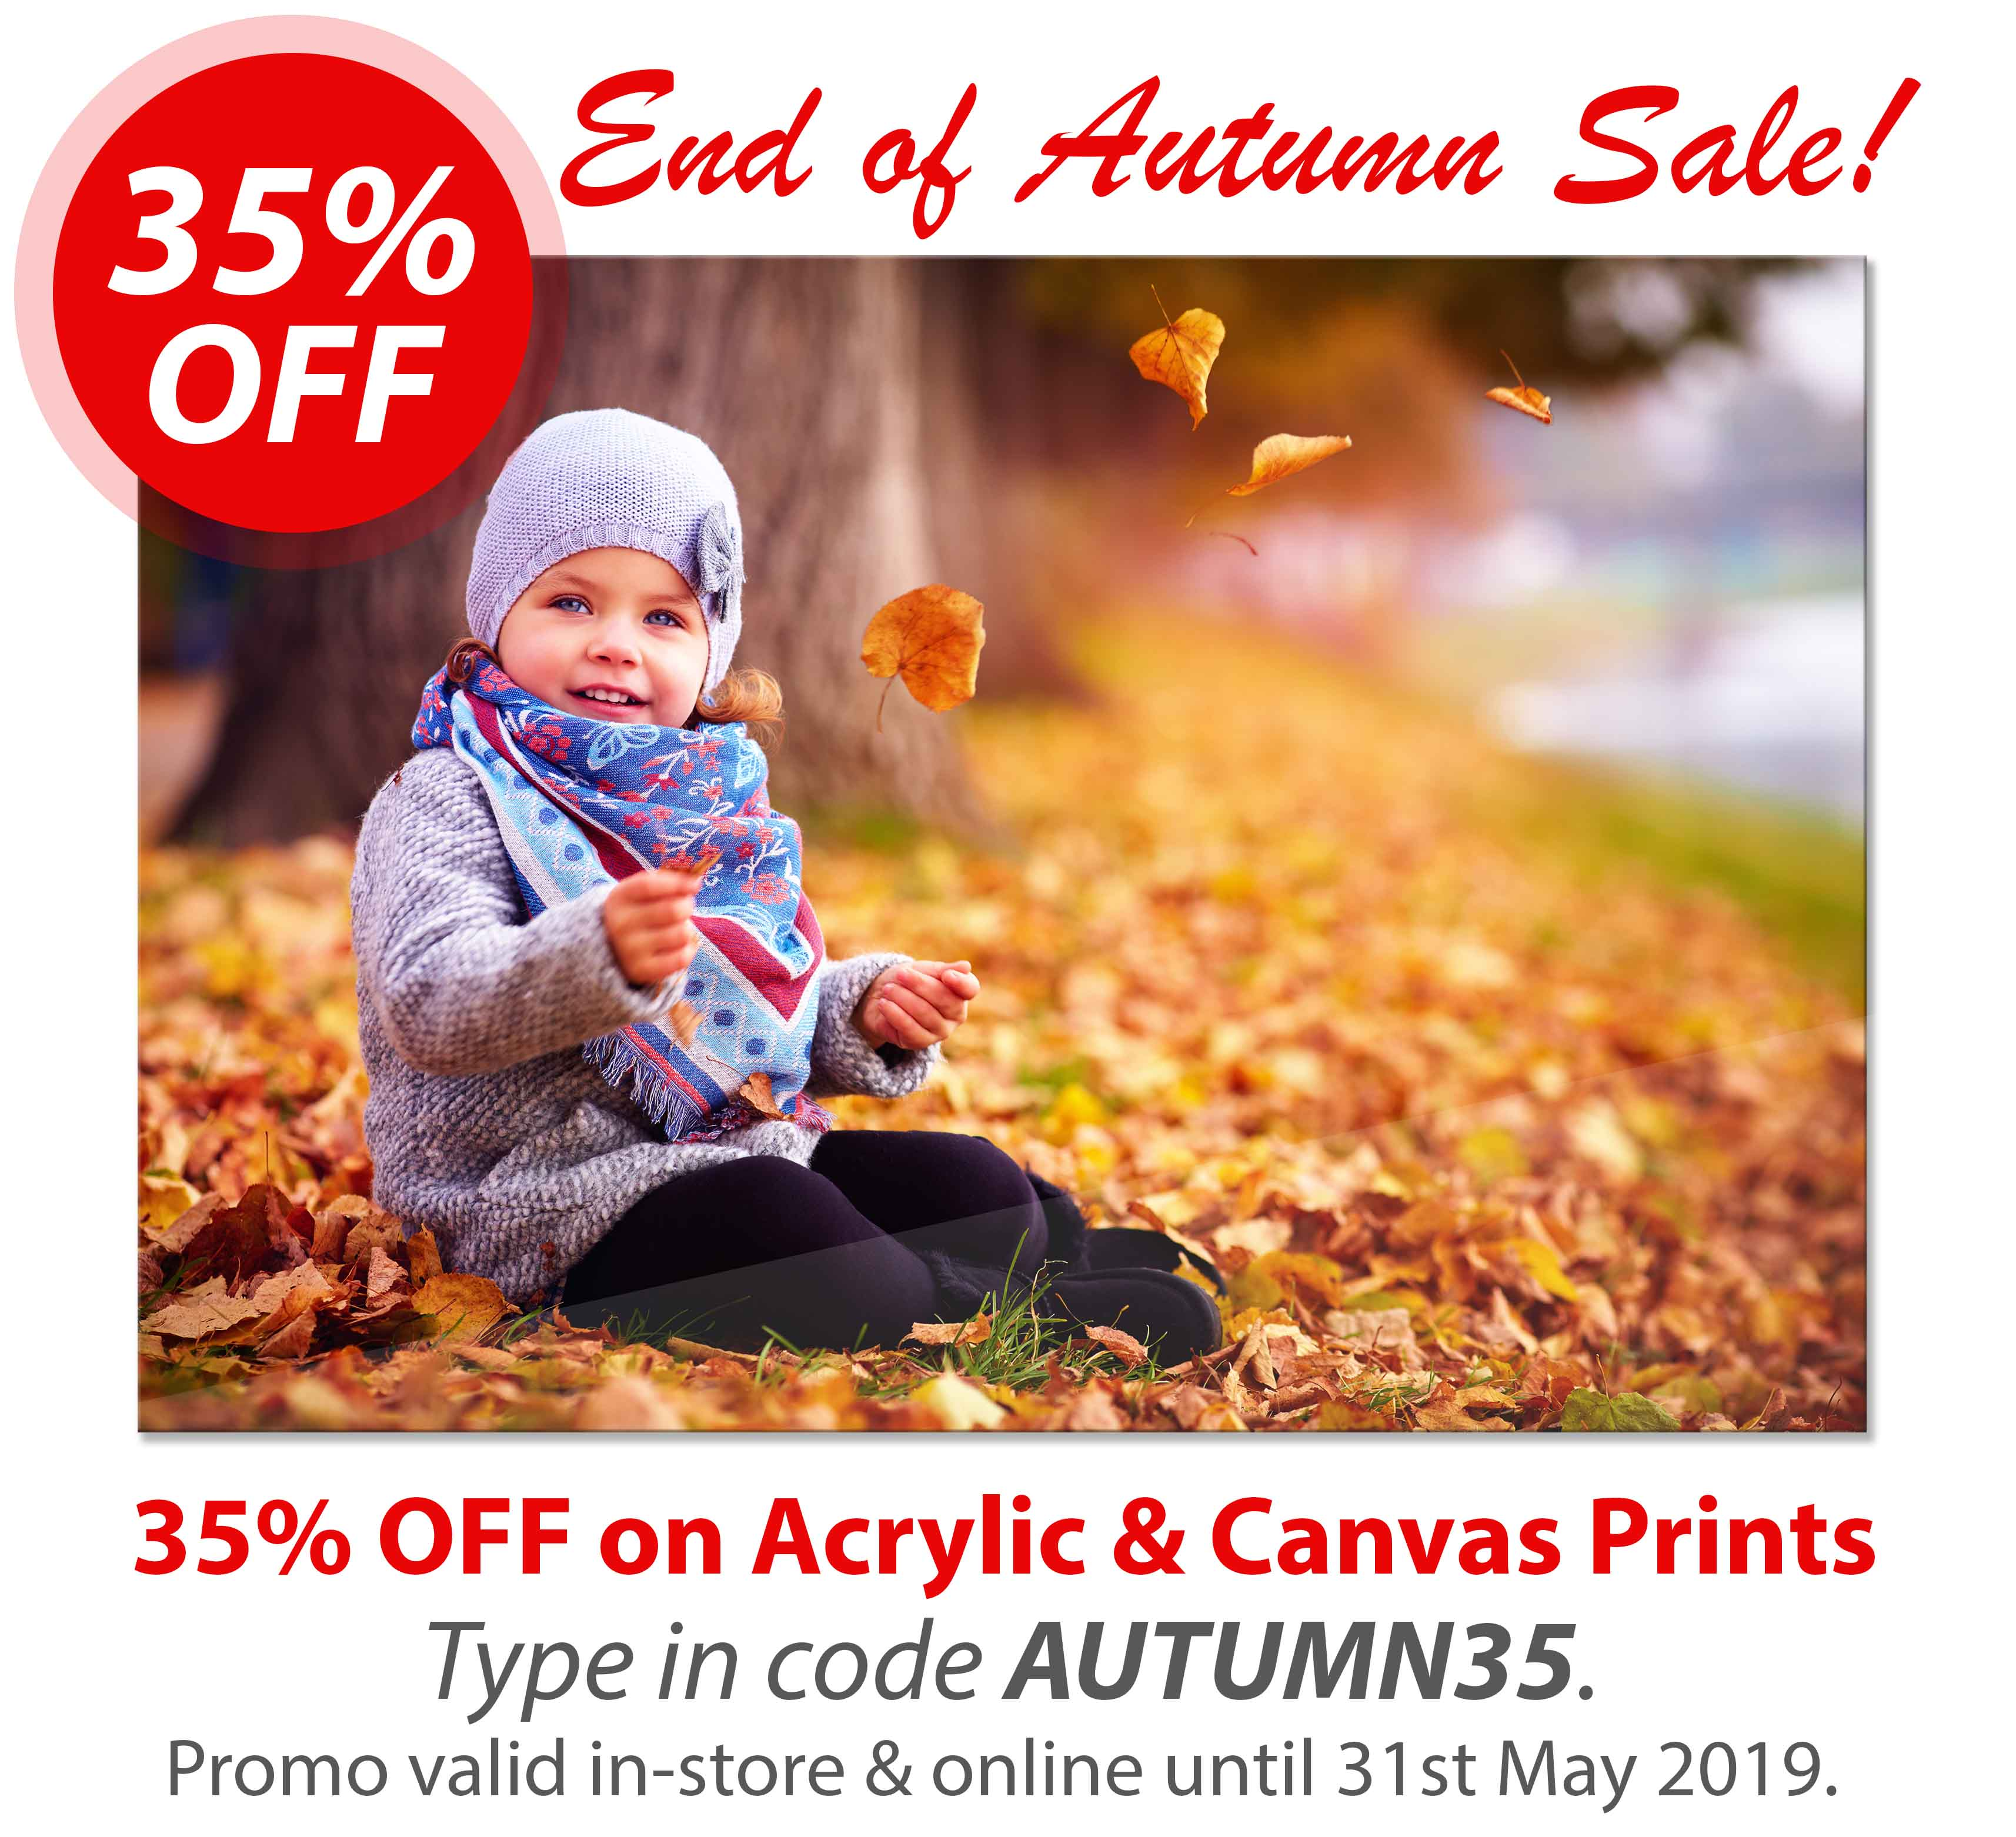 Deluxe Art End of Autumn Sale May15 Acrylic and Canvas Print